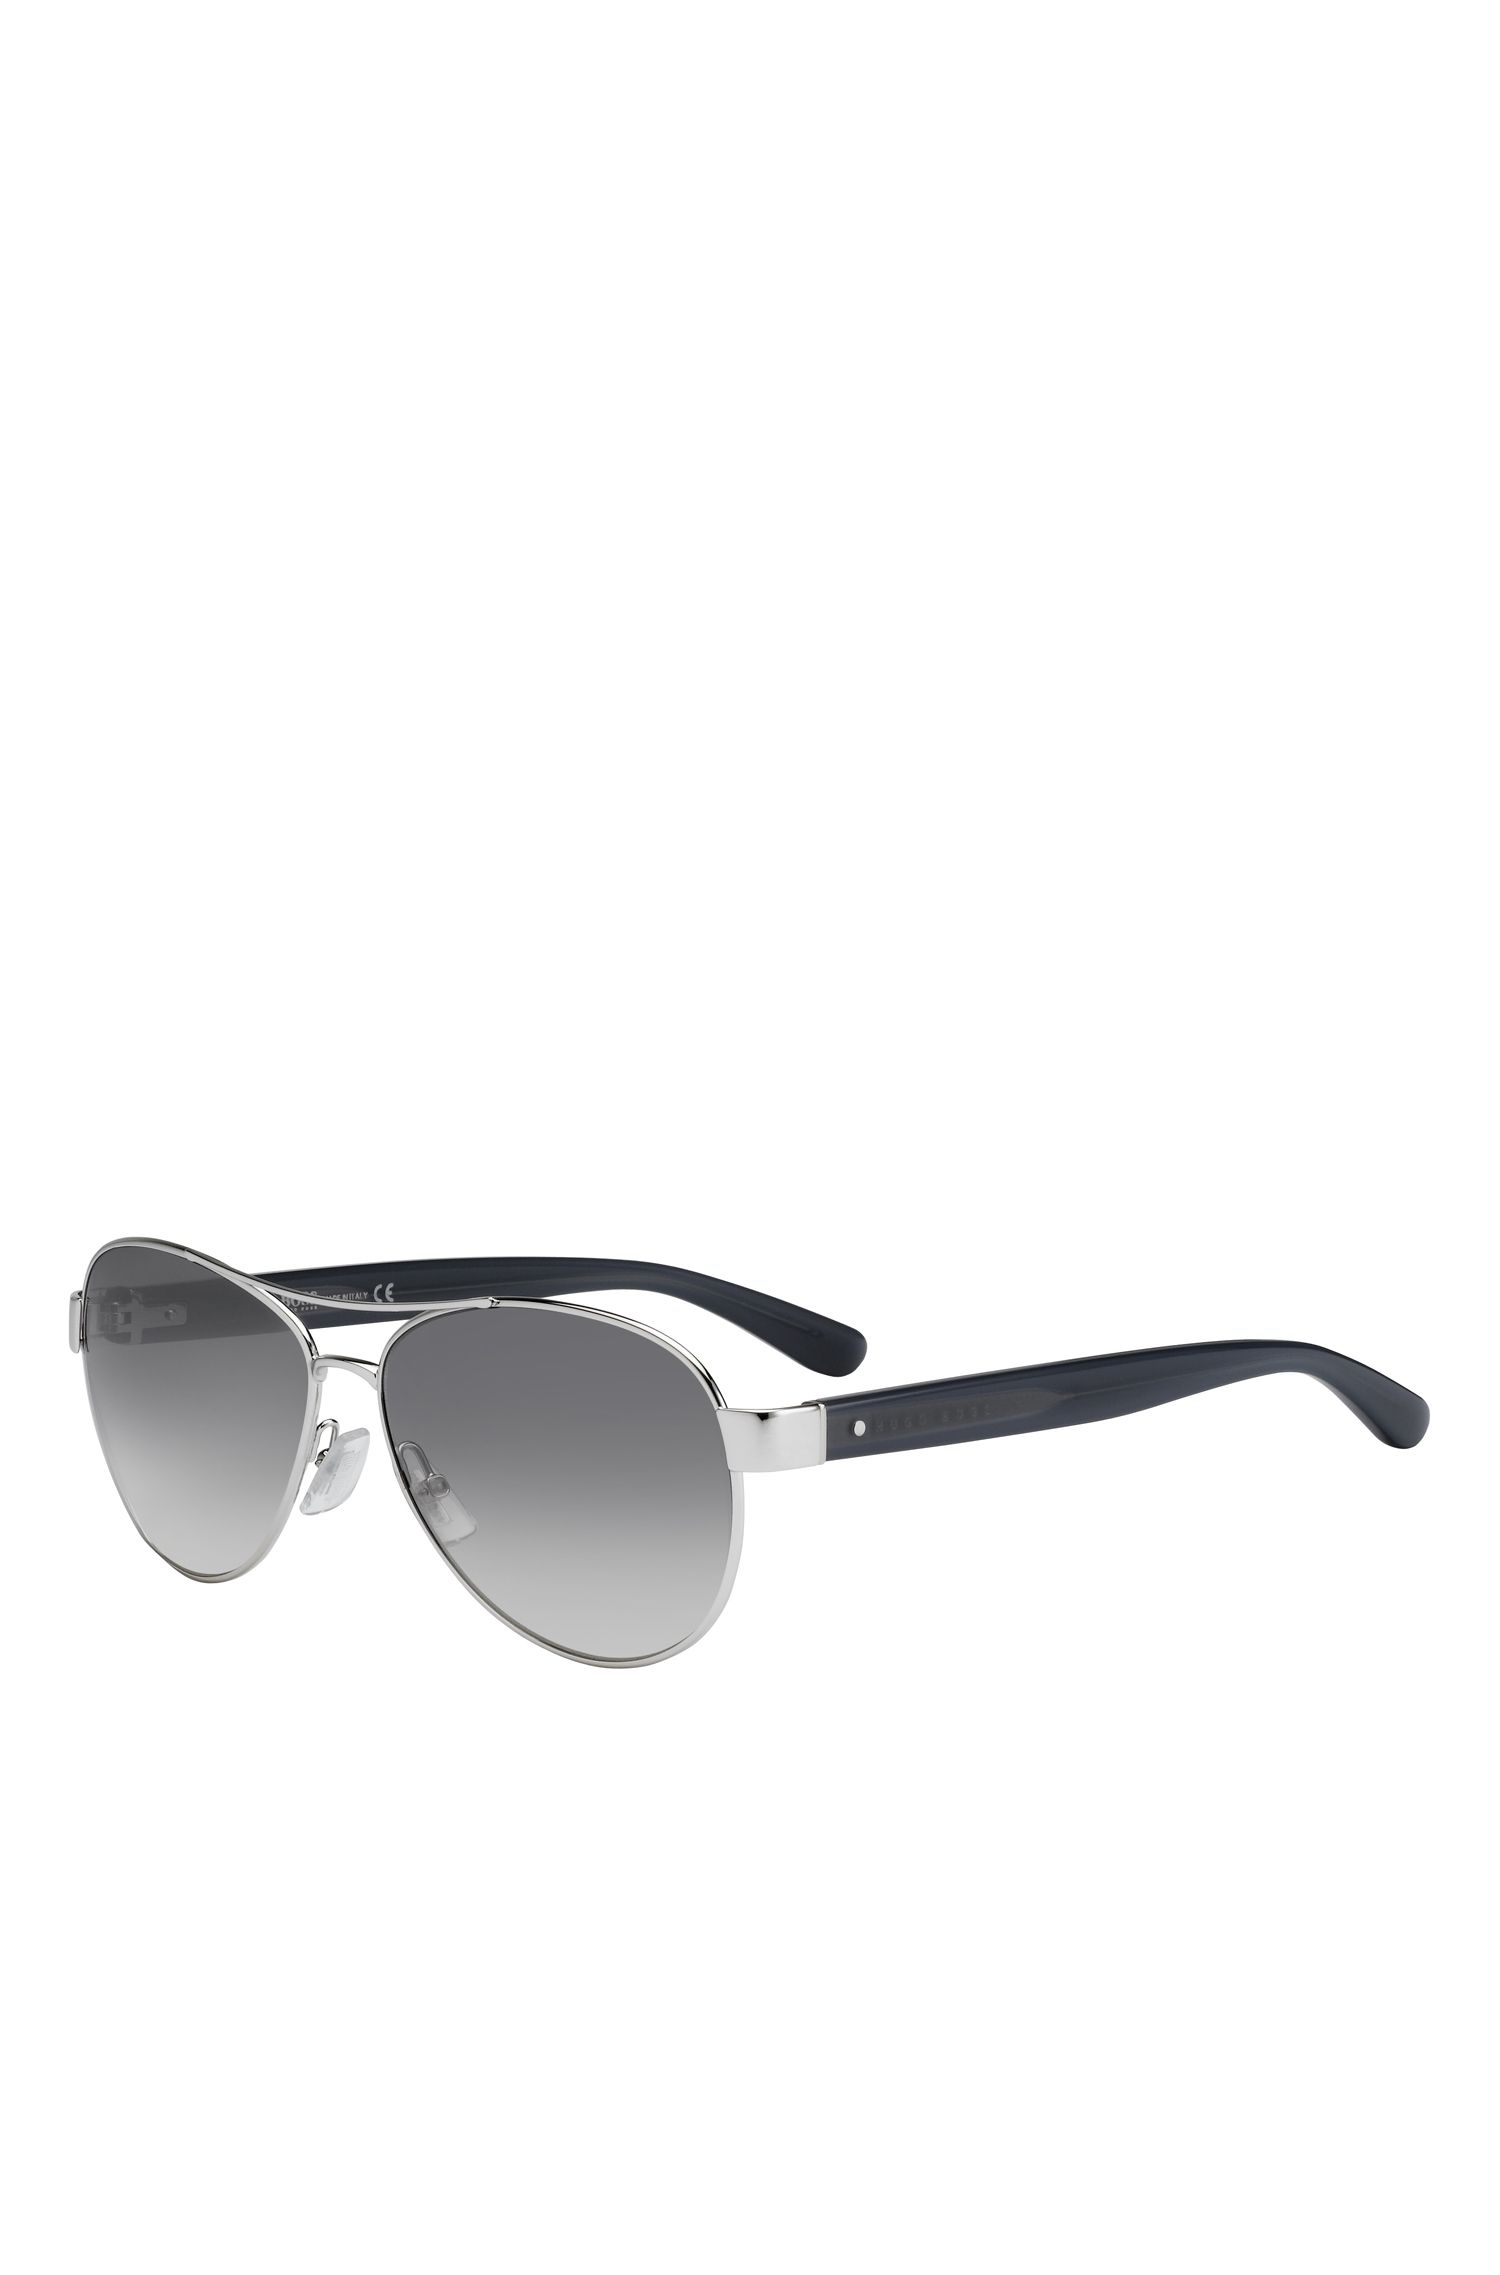 Mirror Lens Aviator Sunglasses | BOSS 0788S, Assorted-Pre-Pack